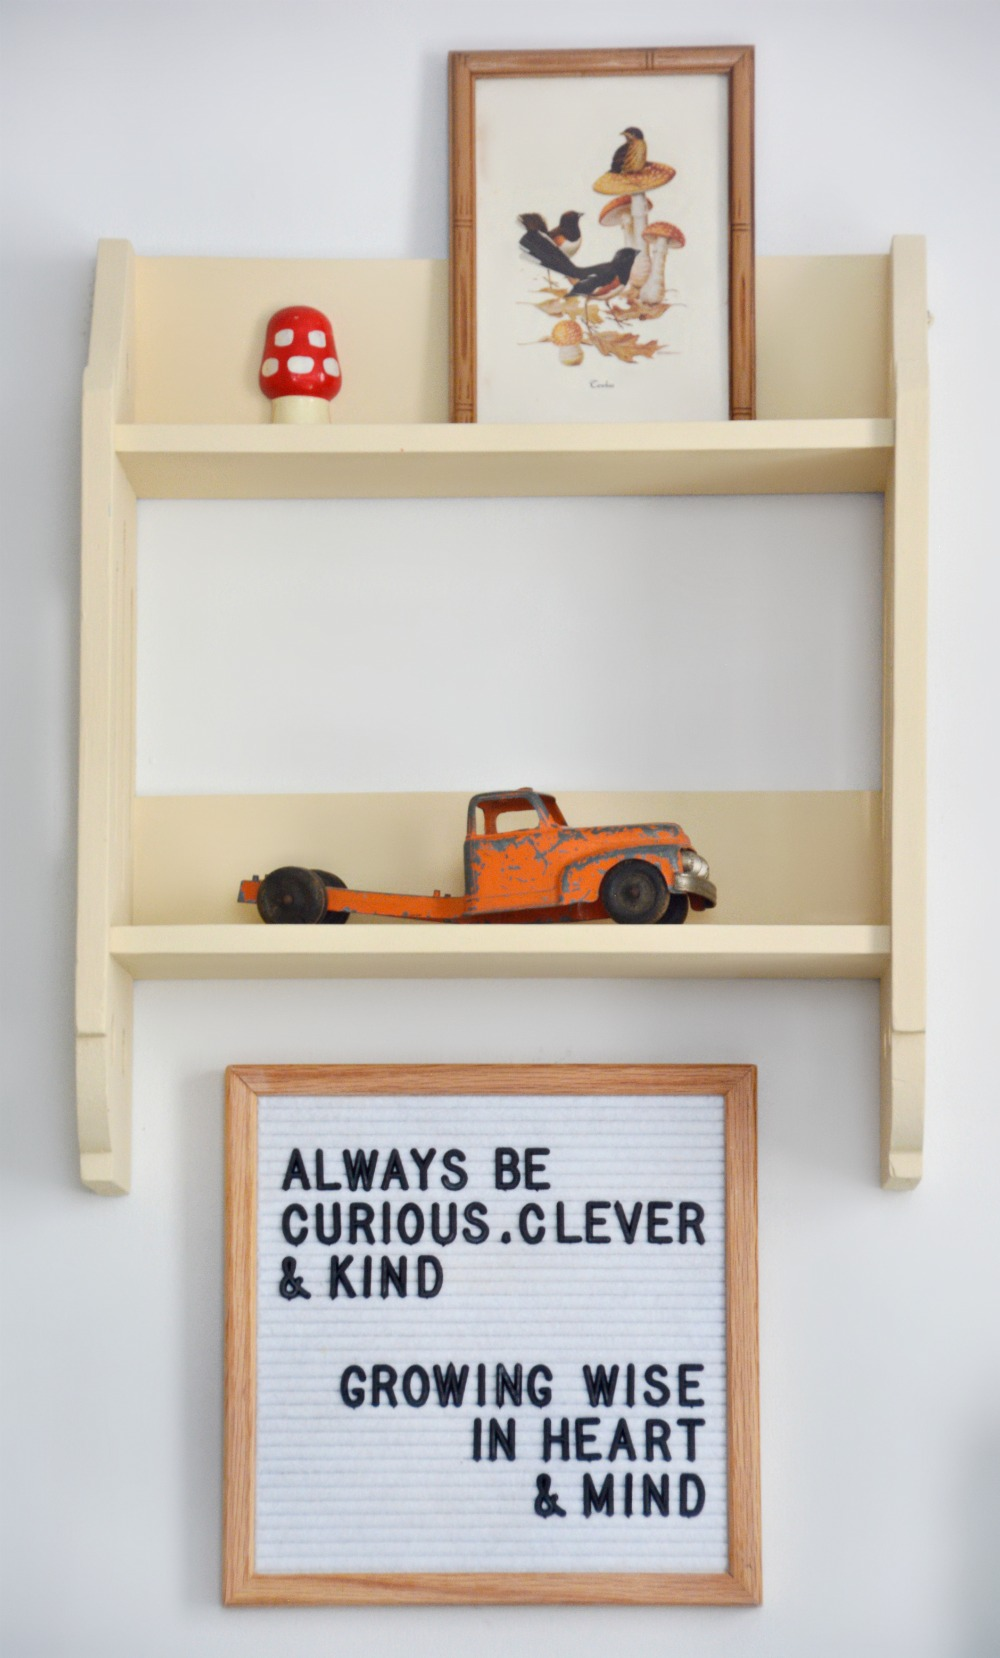 shelf-and-curious-clever-kind-quote-written-by-jessica-of-petal-and-ply